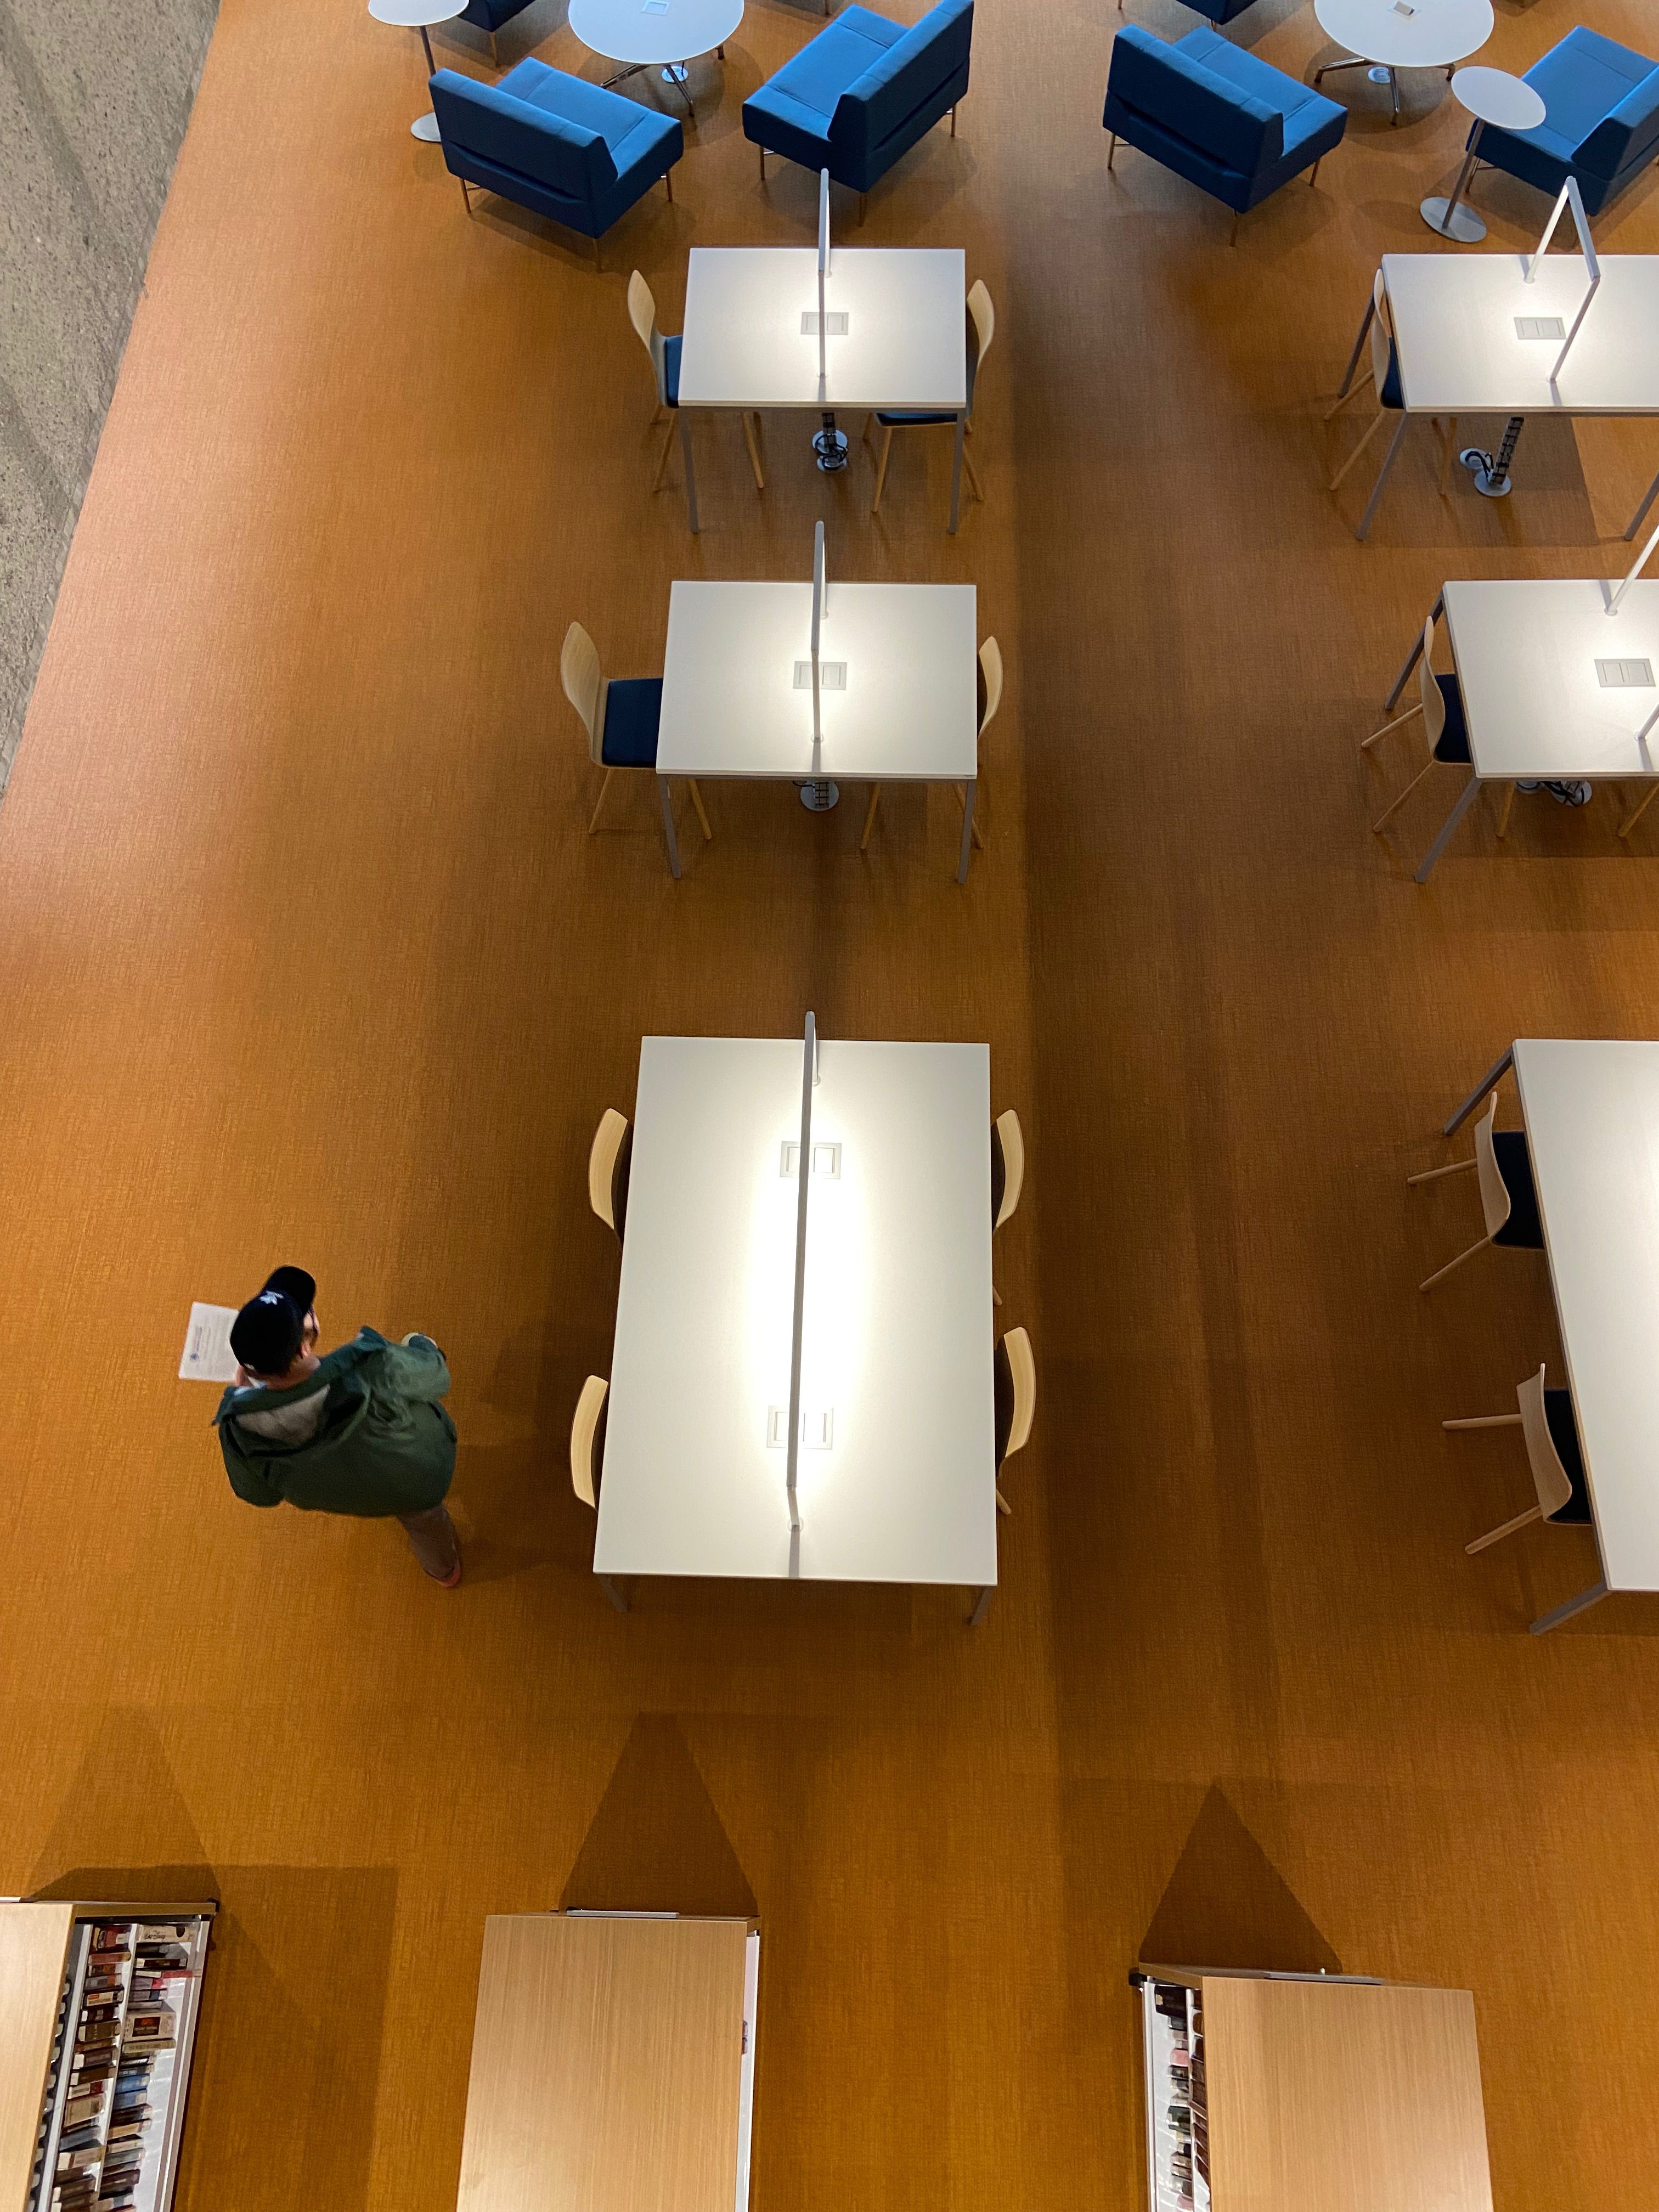 A man walks past new desks in the renovated Central Library in Downtown Atlanta